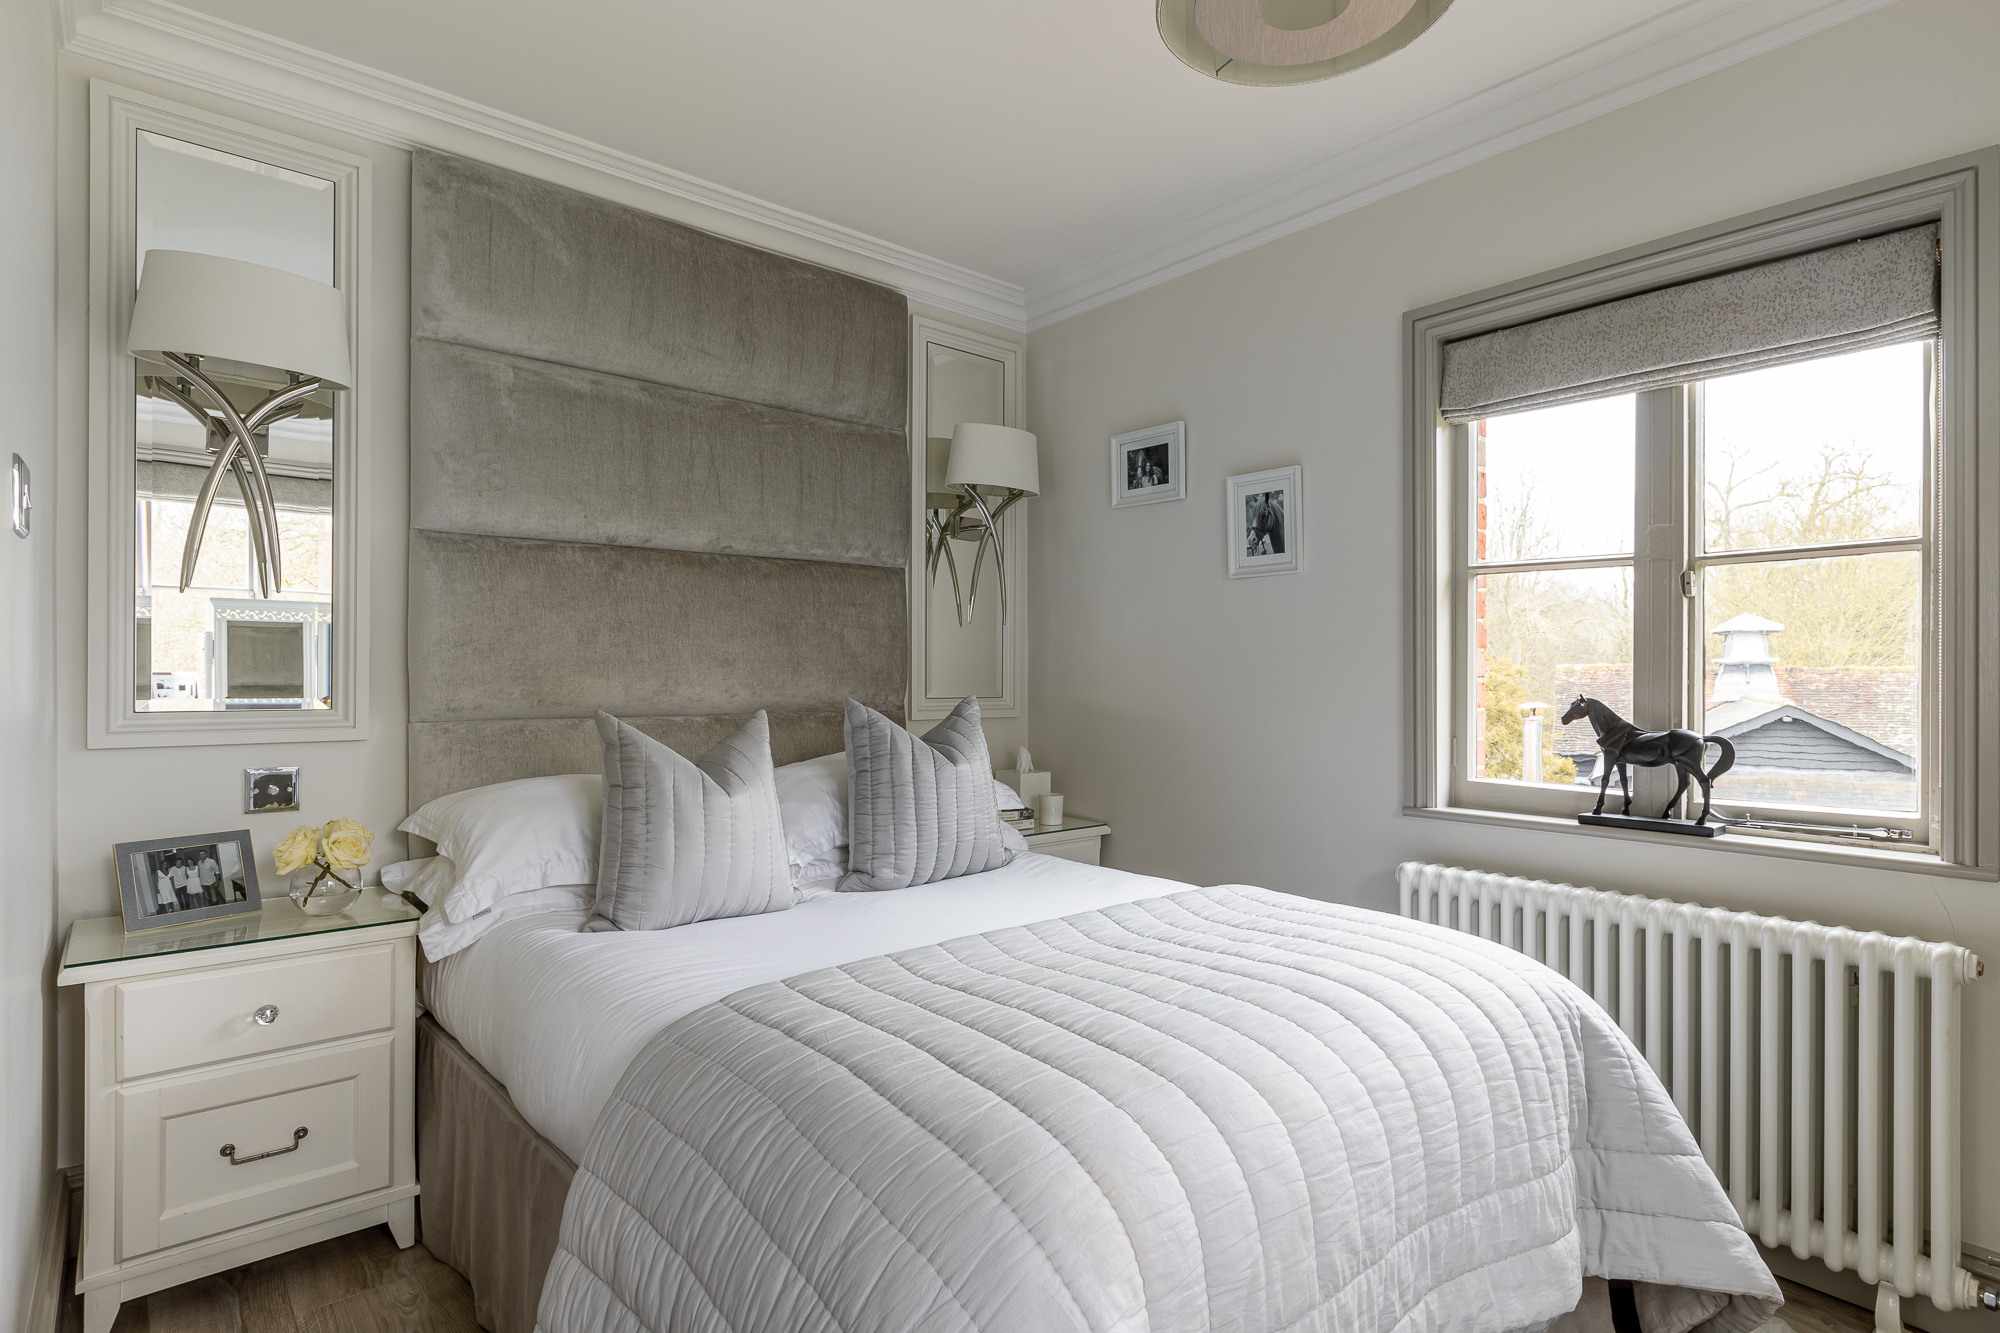 jonathan bond, interior photographer, double bed in bedroom, harlow